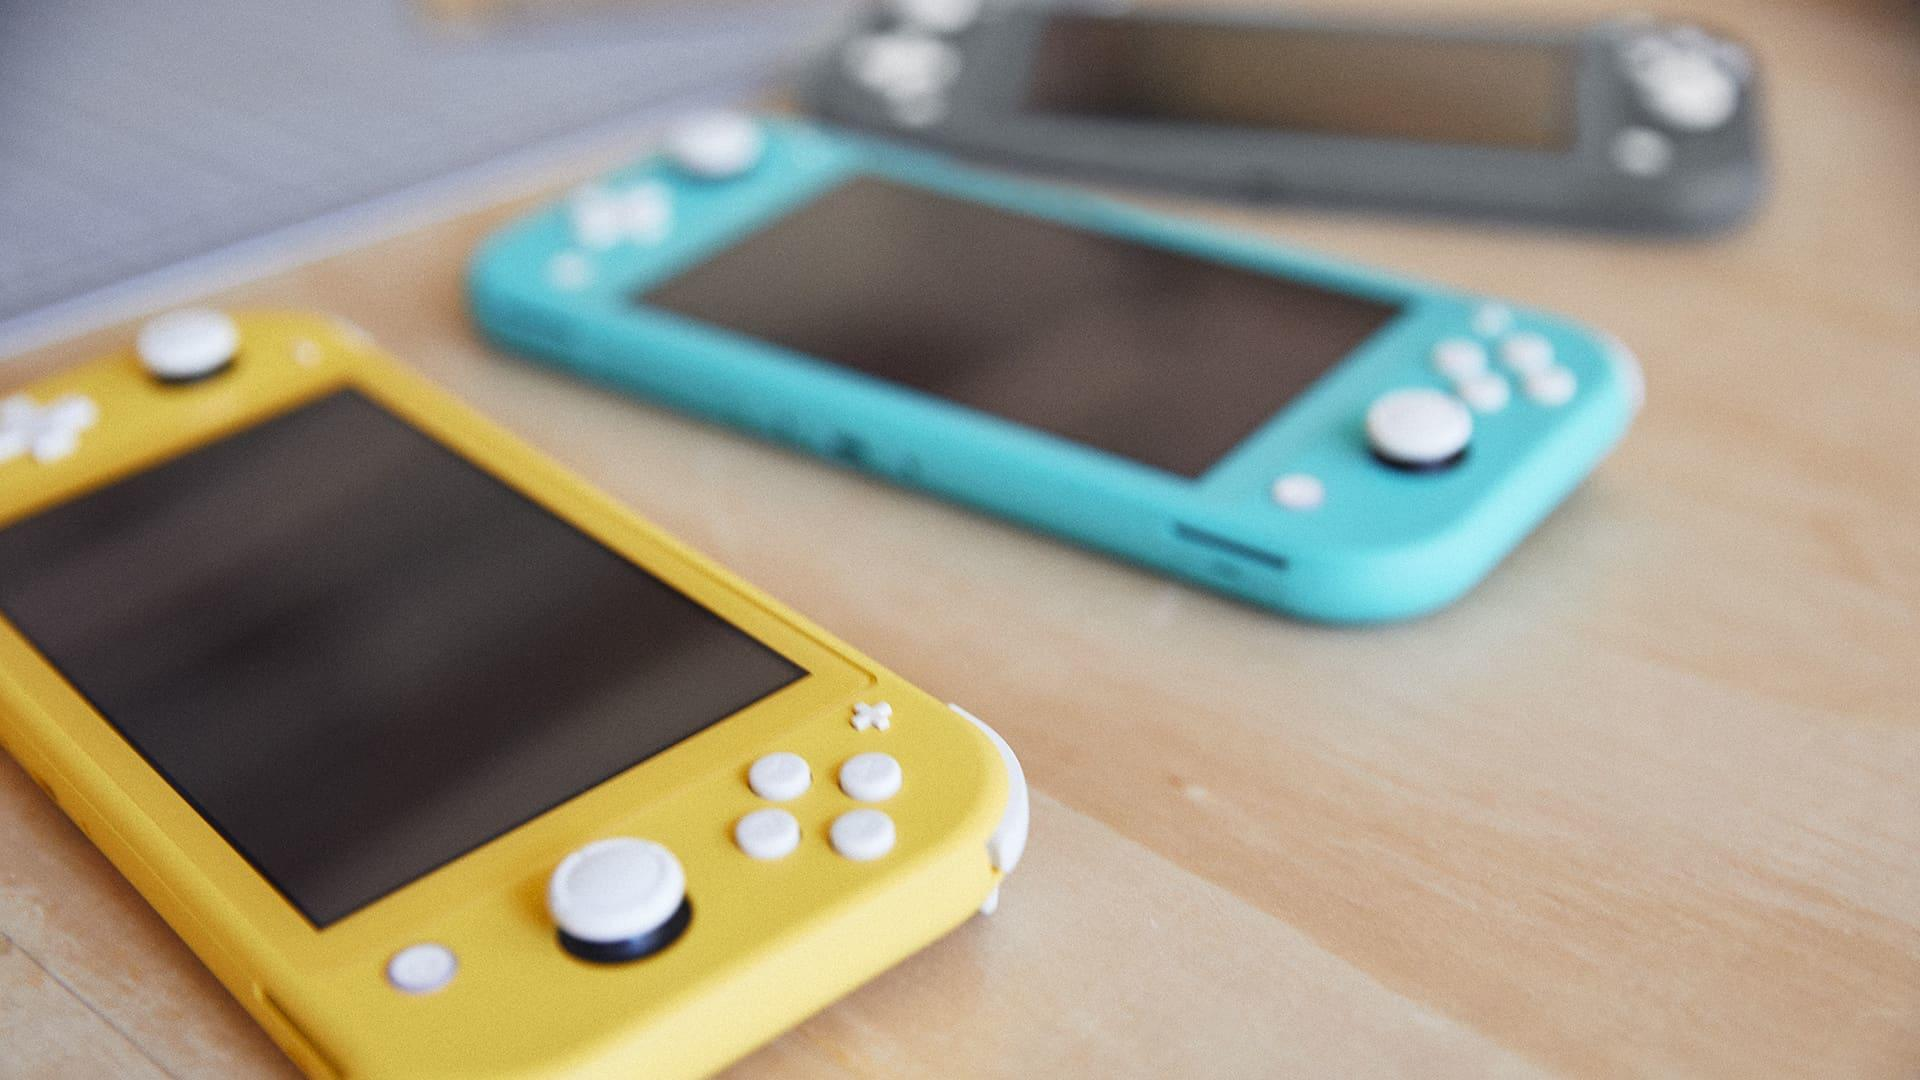 Fortnite Iphone X Vs Switch Nintendo Switch Lite Vs Apple Ipod Touch Which Is The Best 200 Gaming Handheld For Kids Cnet